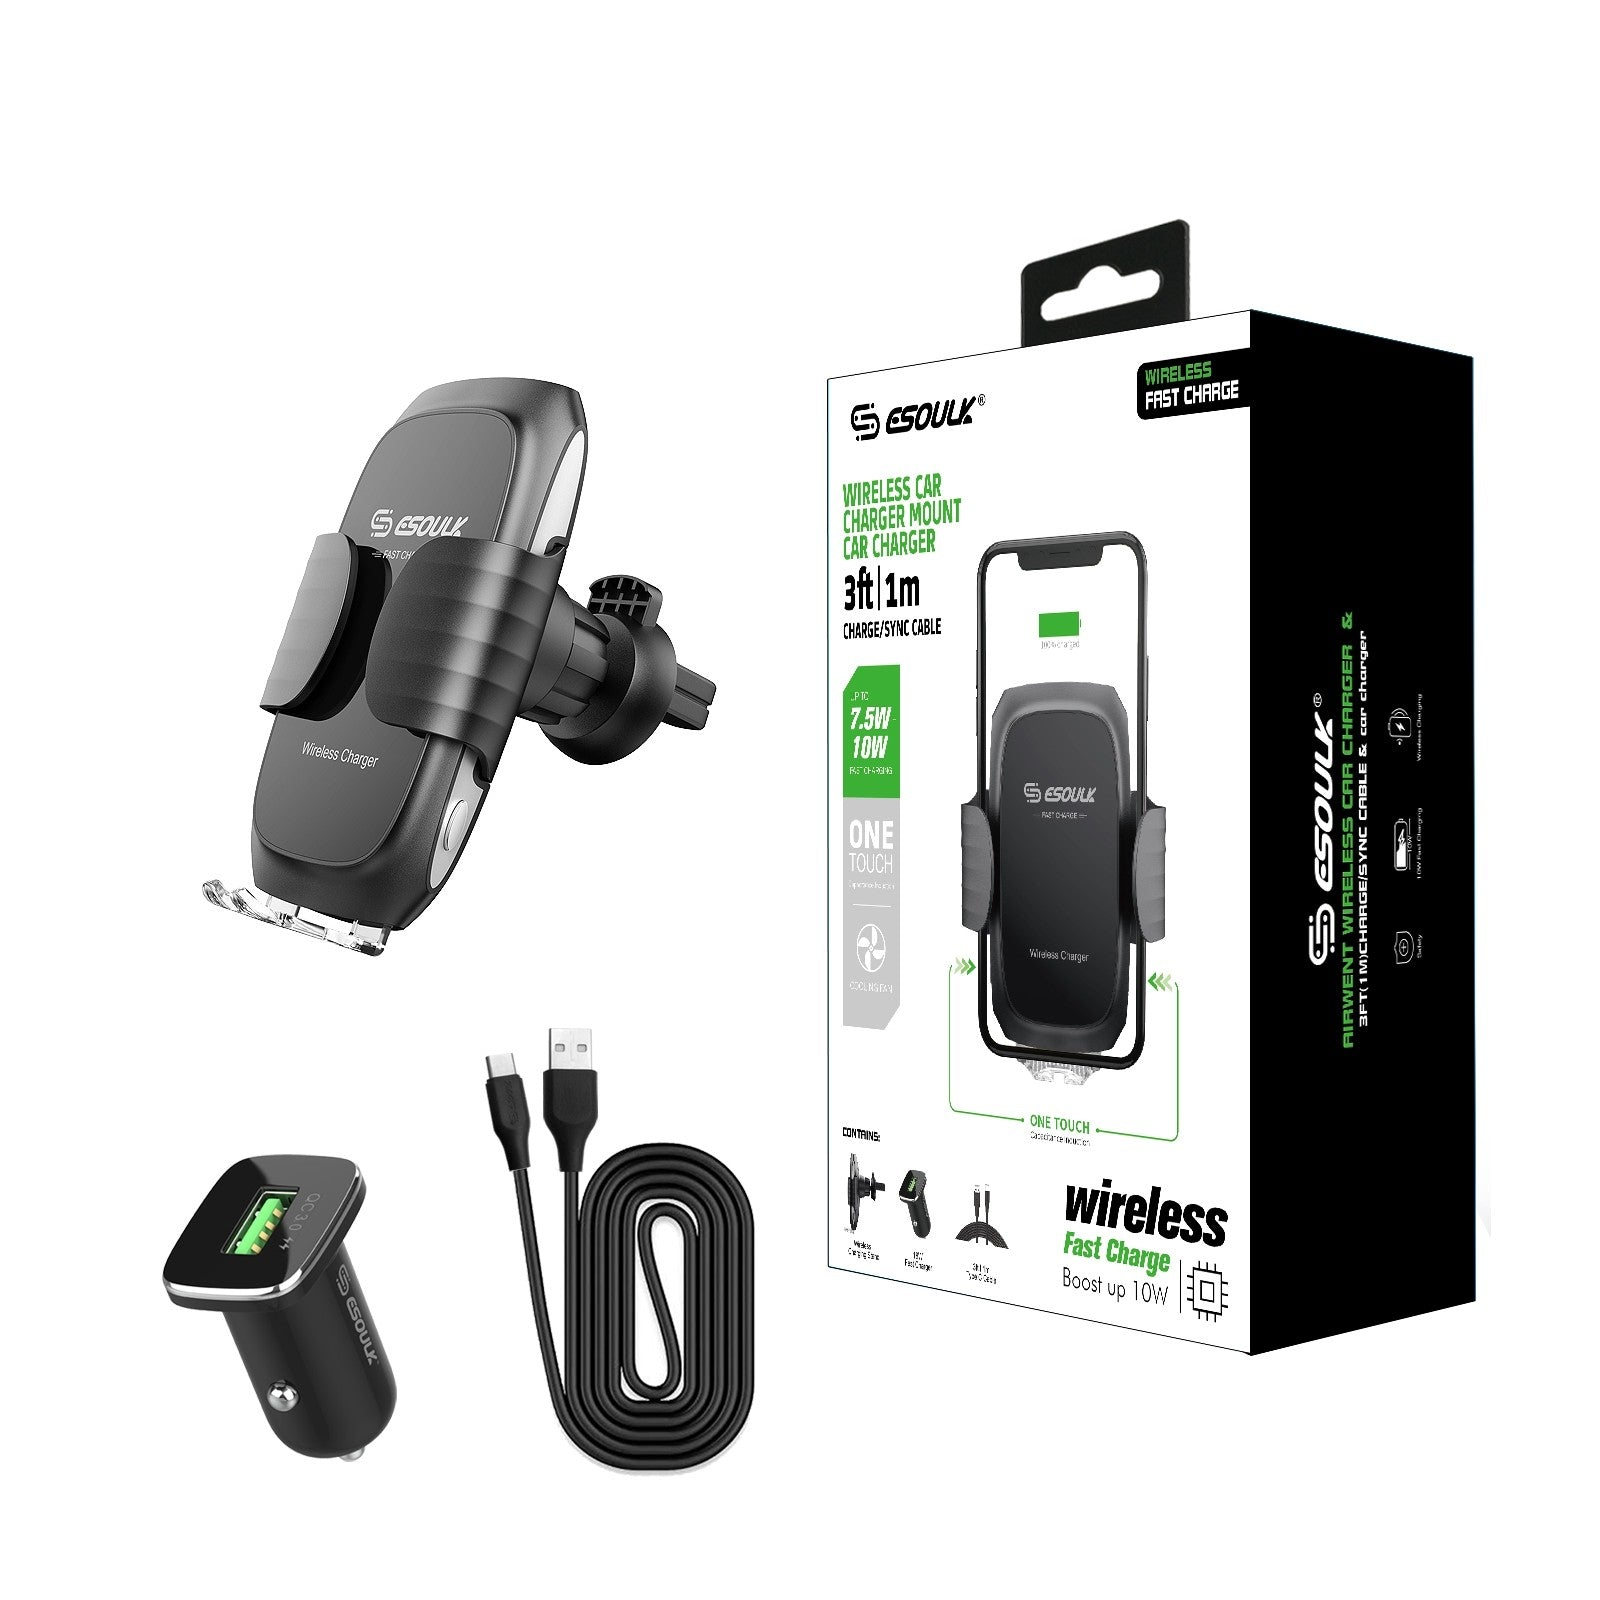 Esoulk Wireless Fast Charging  10W Air Vent Car Mount Black EW04PBK